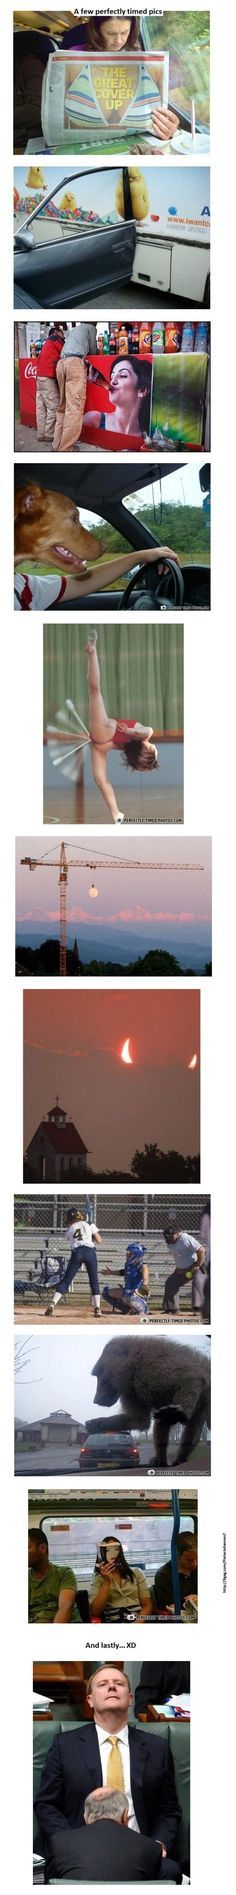 perfectly timed pics. The last one is the best